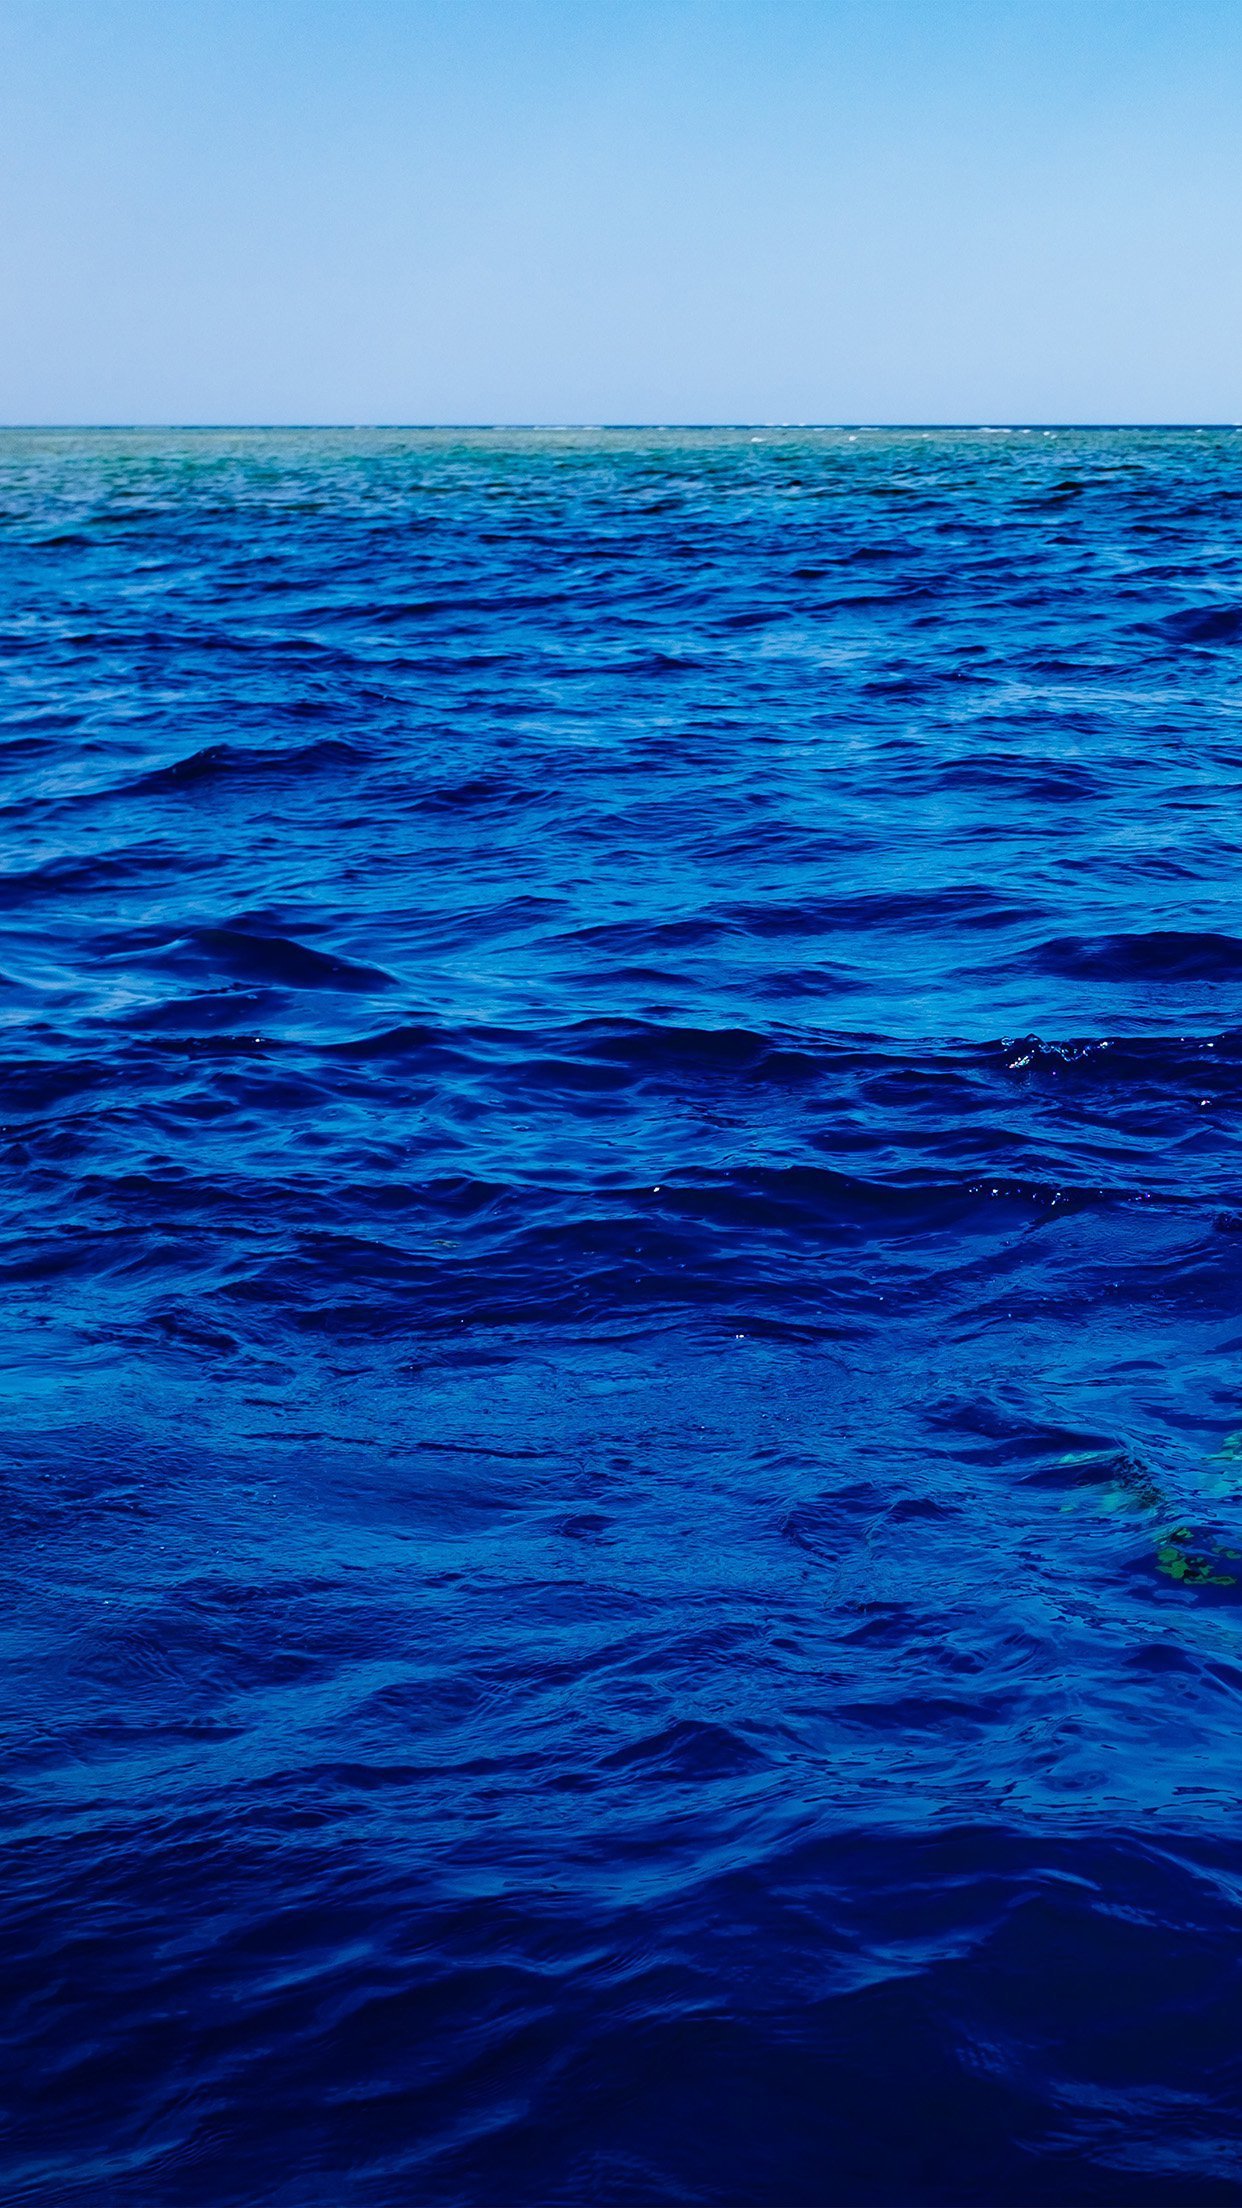 Sea Blue Ocean Nature Summer Swim Android wallpaper